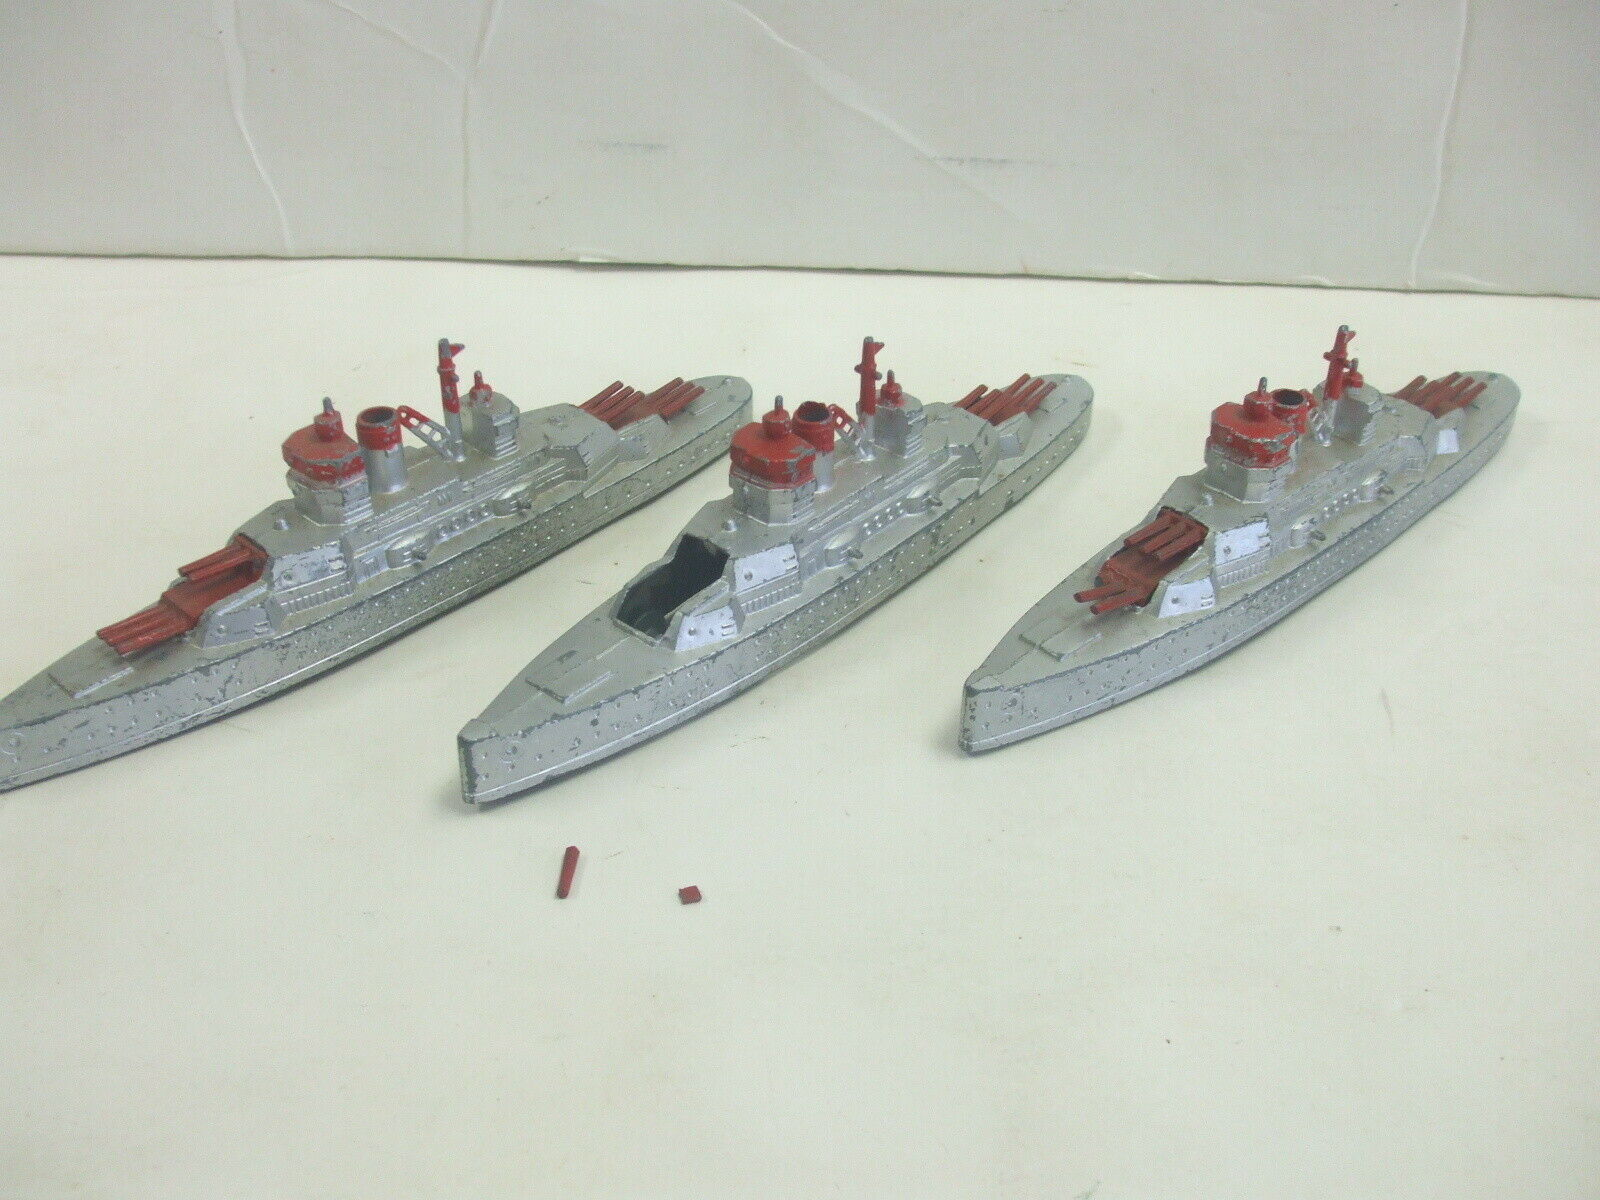 Lot of 3 Vintage Tootsietoy No. 1034 Navy Battleships Nice Condition but Damaged